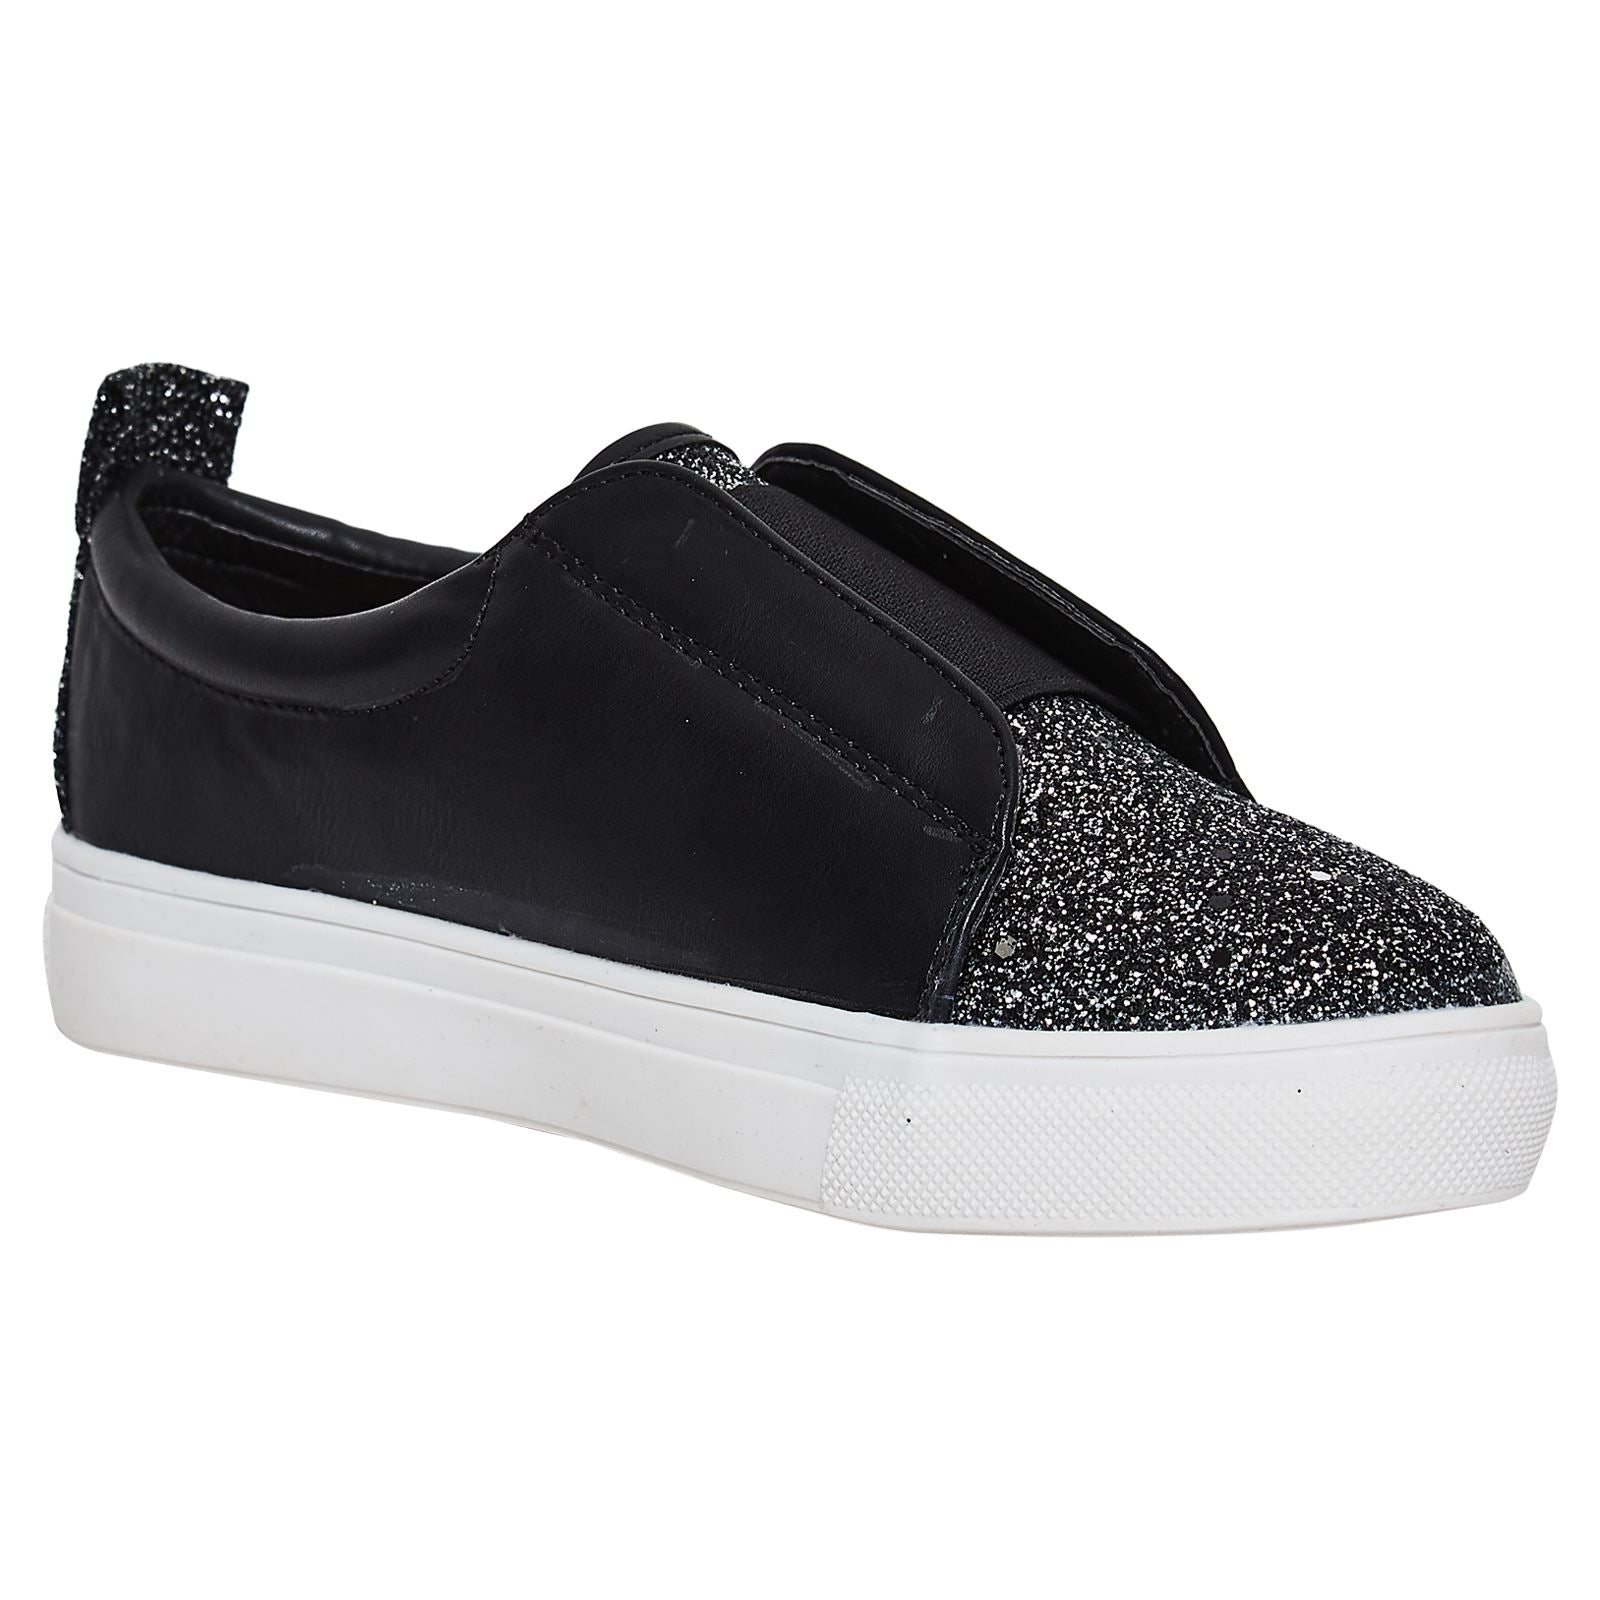 Hadleigh Girls Glittery Pumps in Black - Feet First Fashion